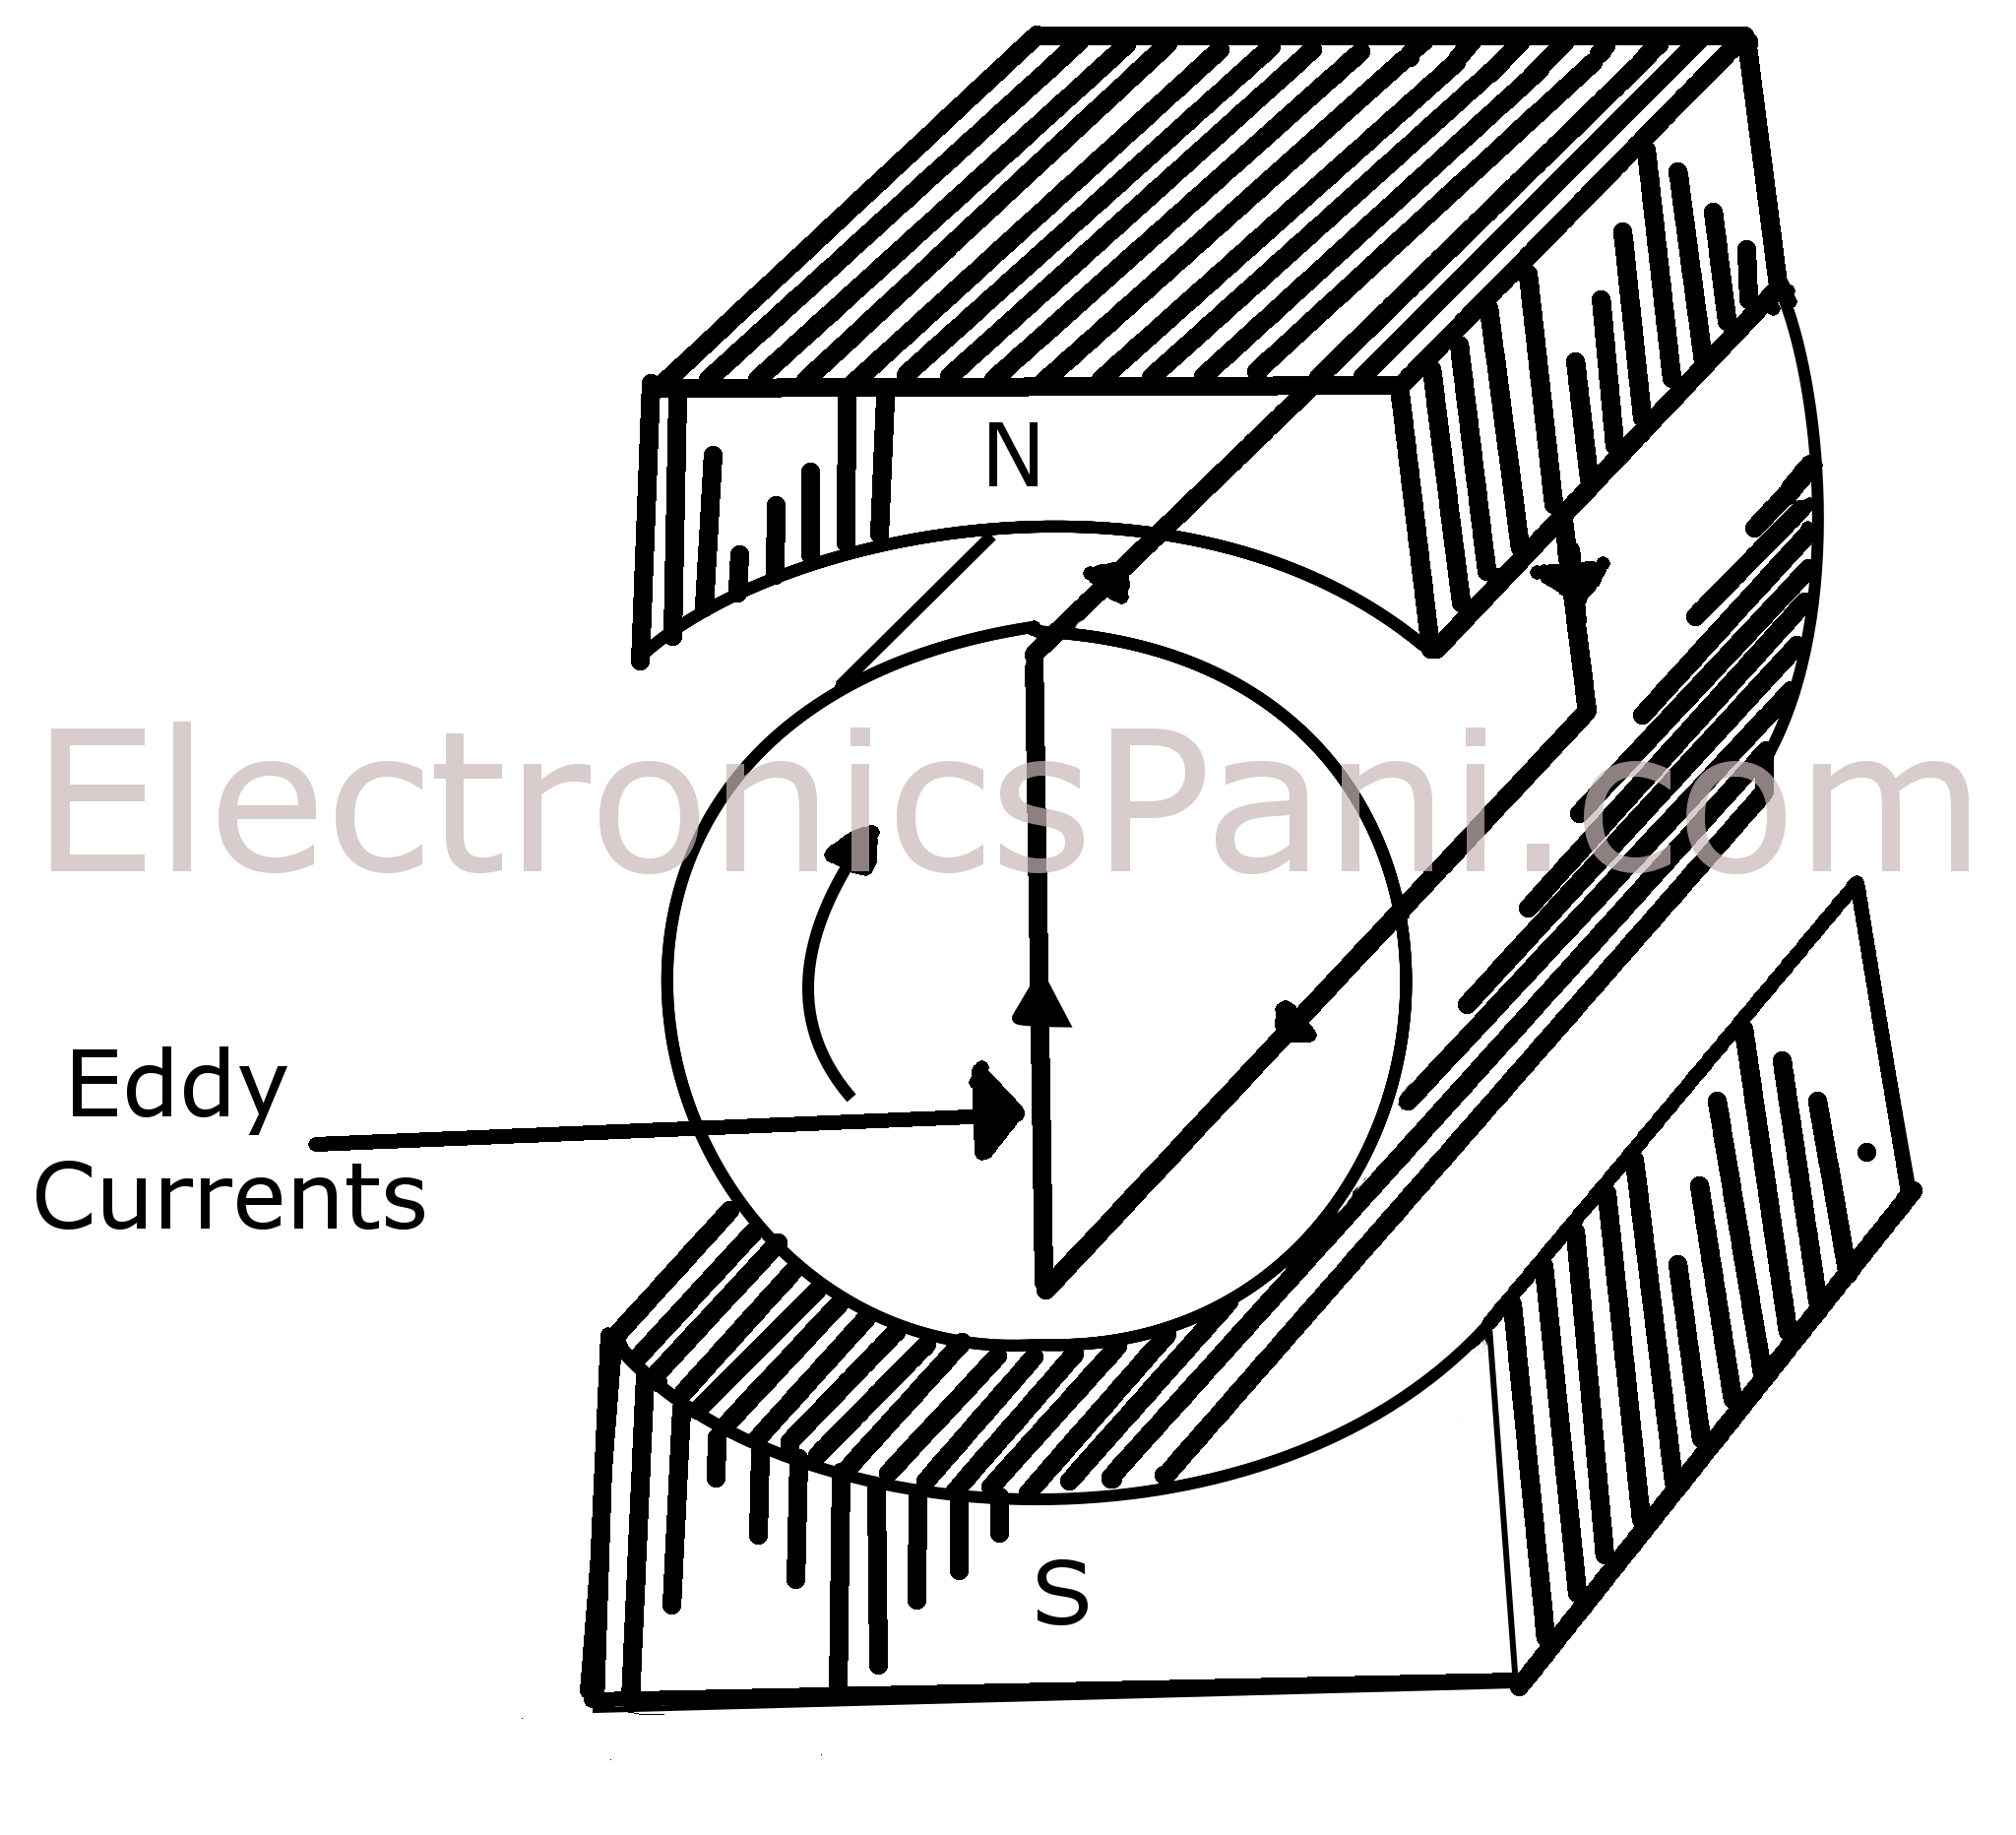 Iron clipart electronic machine. Eddy currents and current